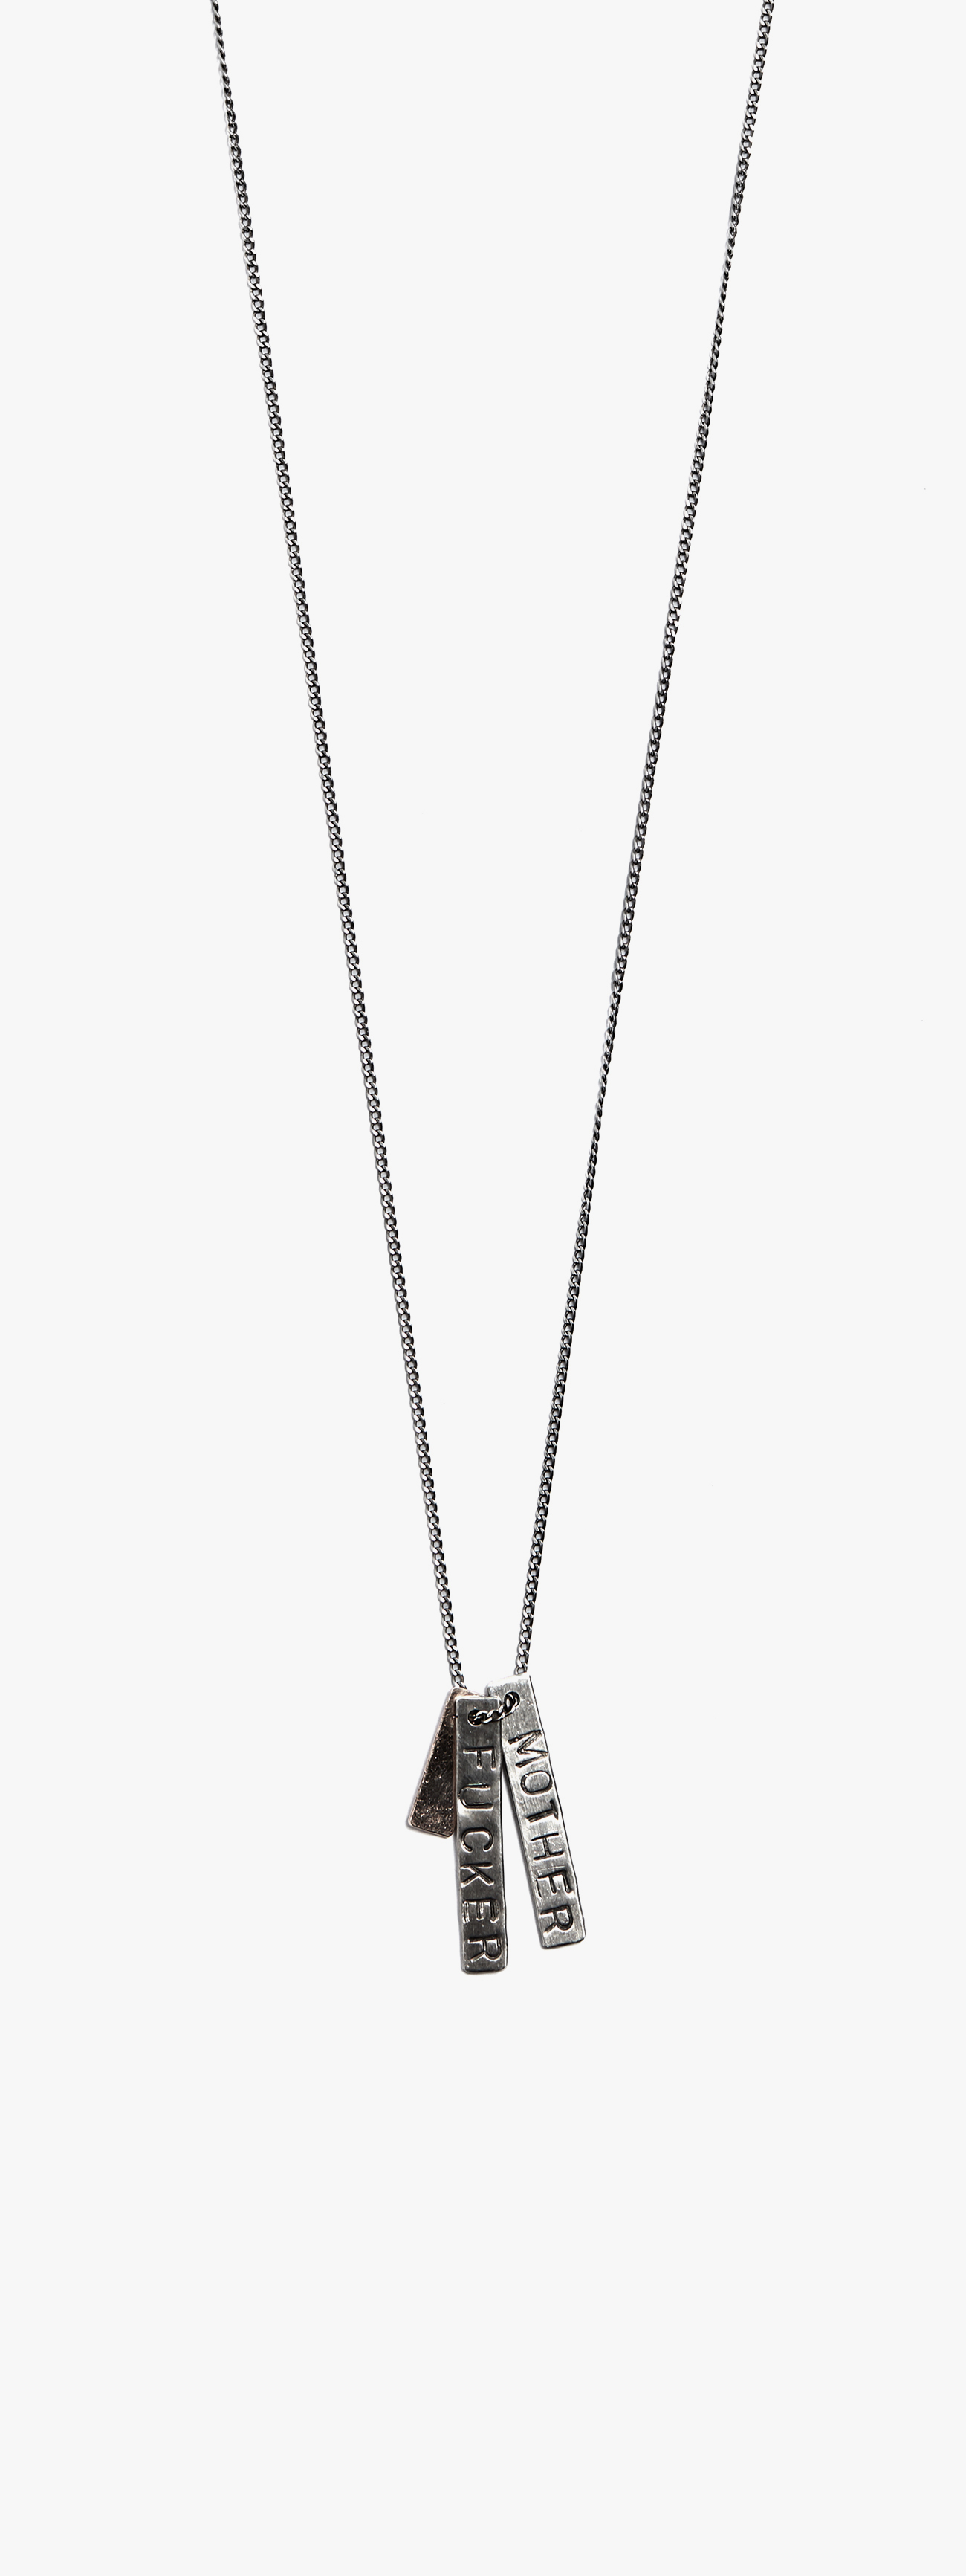 Image of 'M.F.' / 18kt Rose Gold ID Tags Necklace